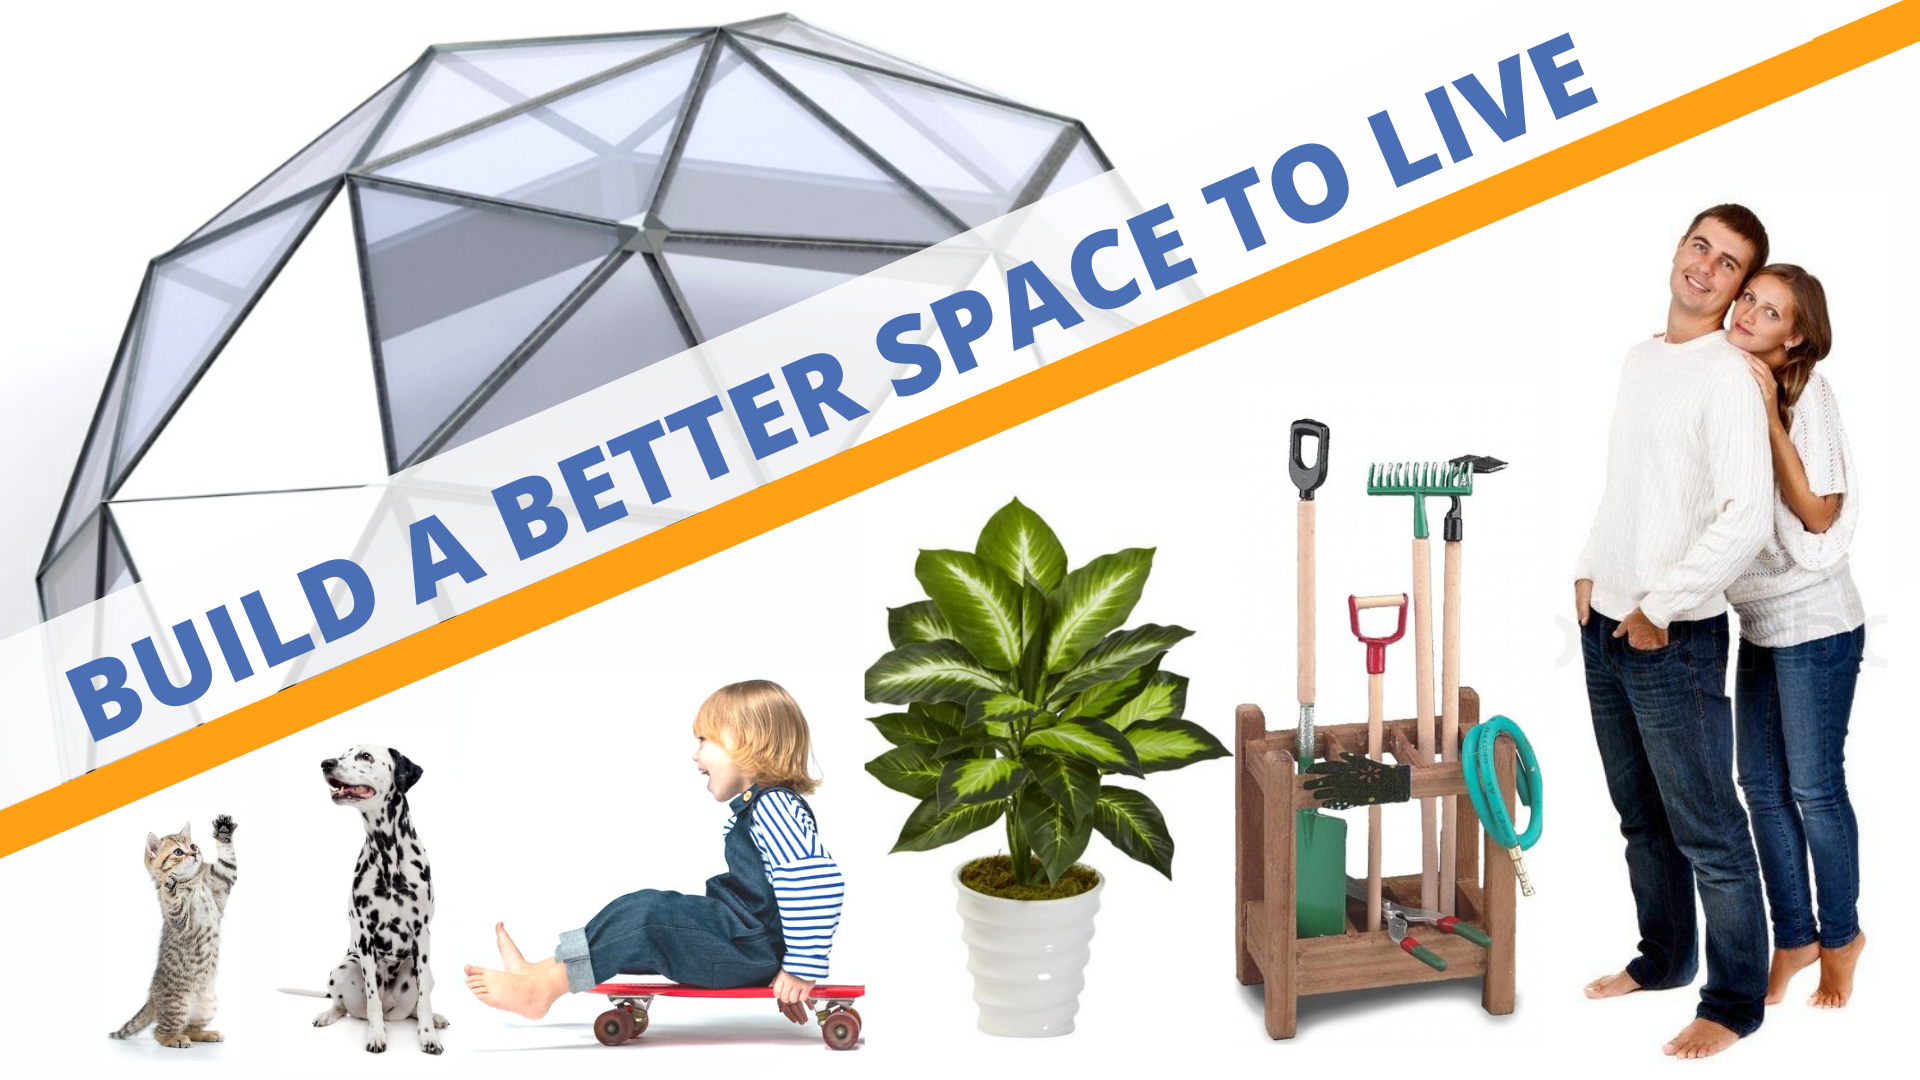 build better spaces